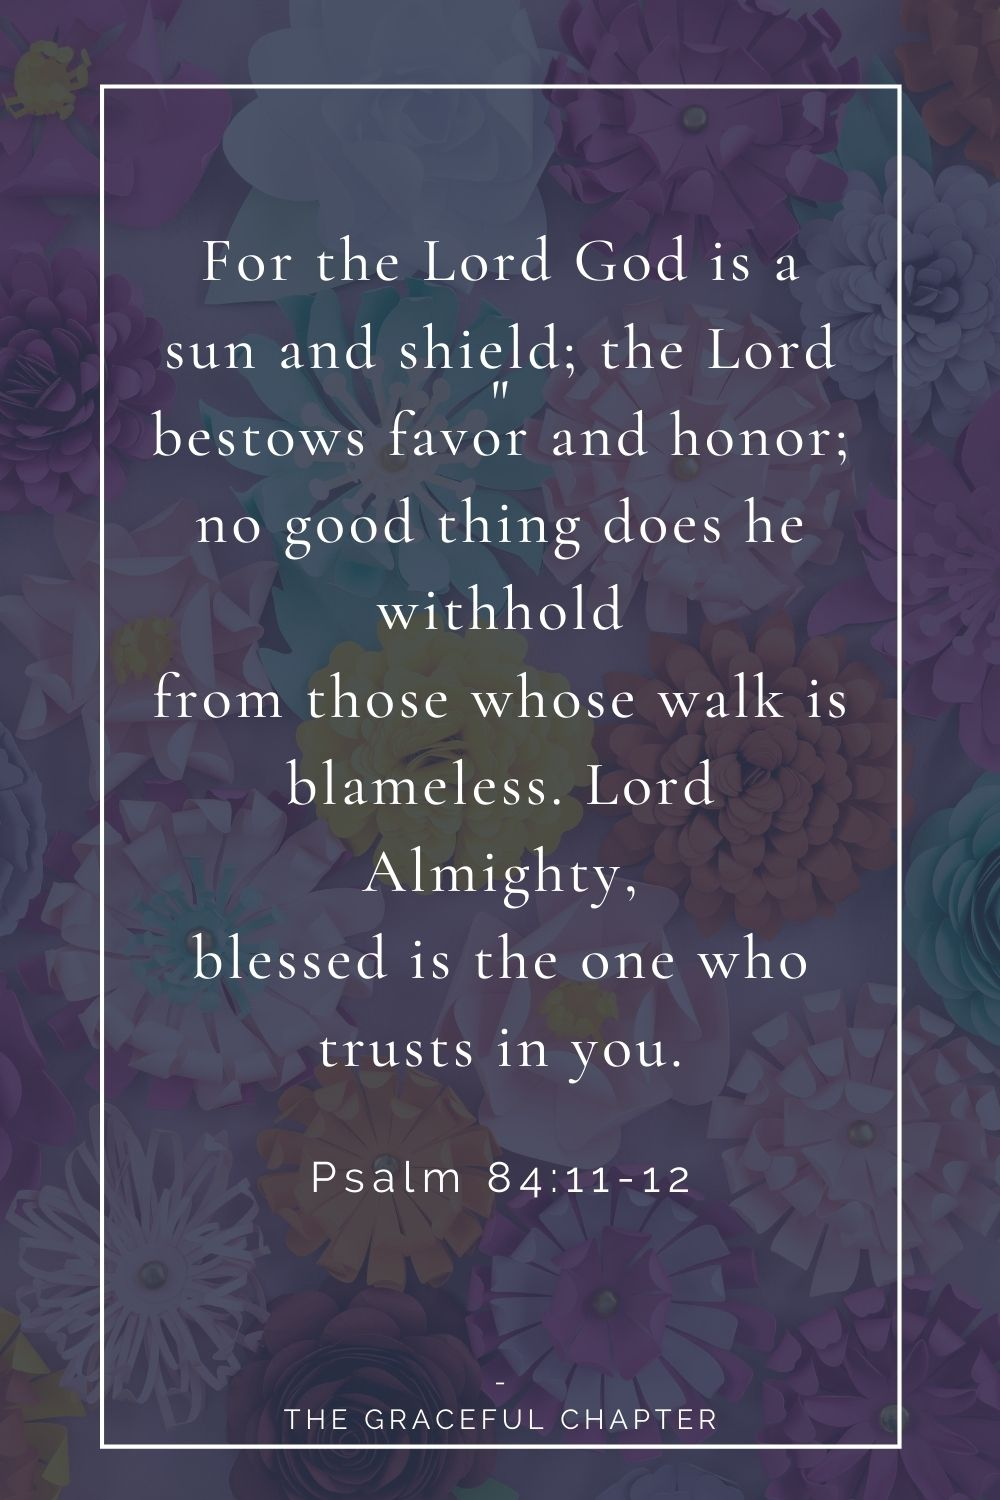 For the Lord God is a sun and shield; the Lord bestows favor and honor; no good thing does he withhold from those whose walk is blameless. Lord Almighty, blessed is the one who trusts in you. Psalm 84:11-12